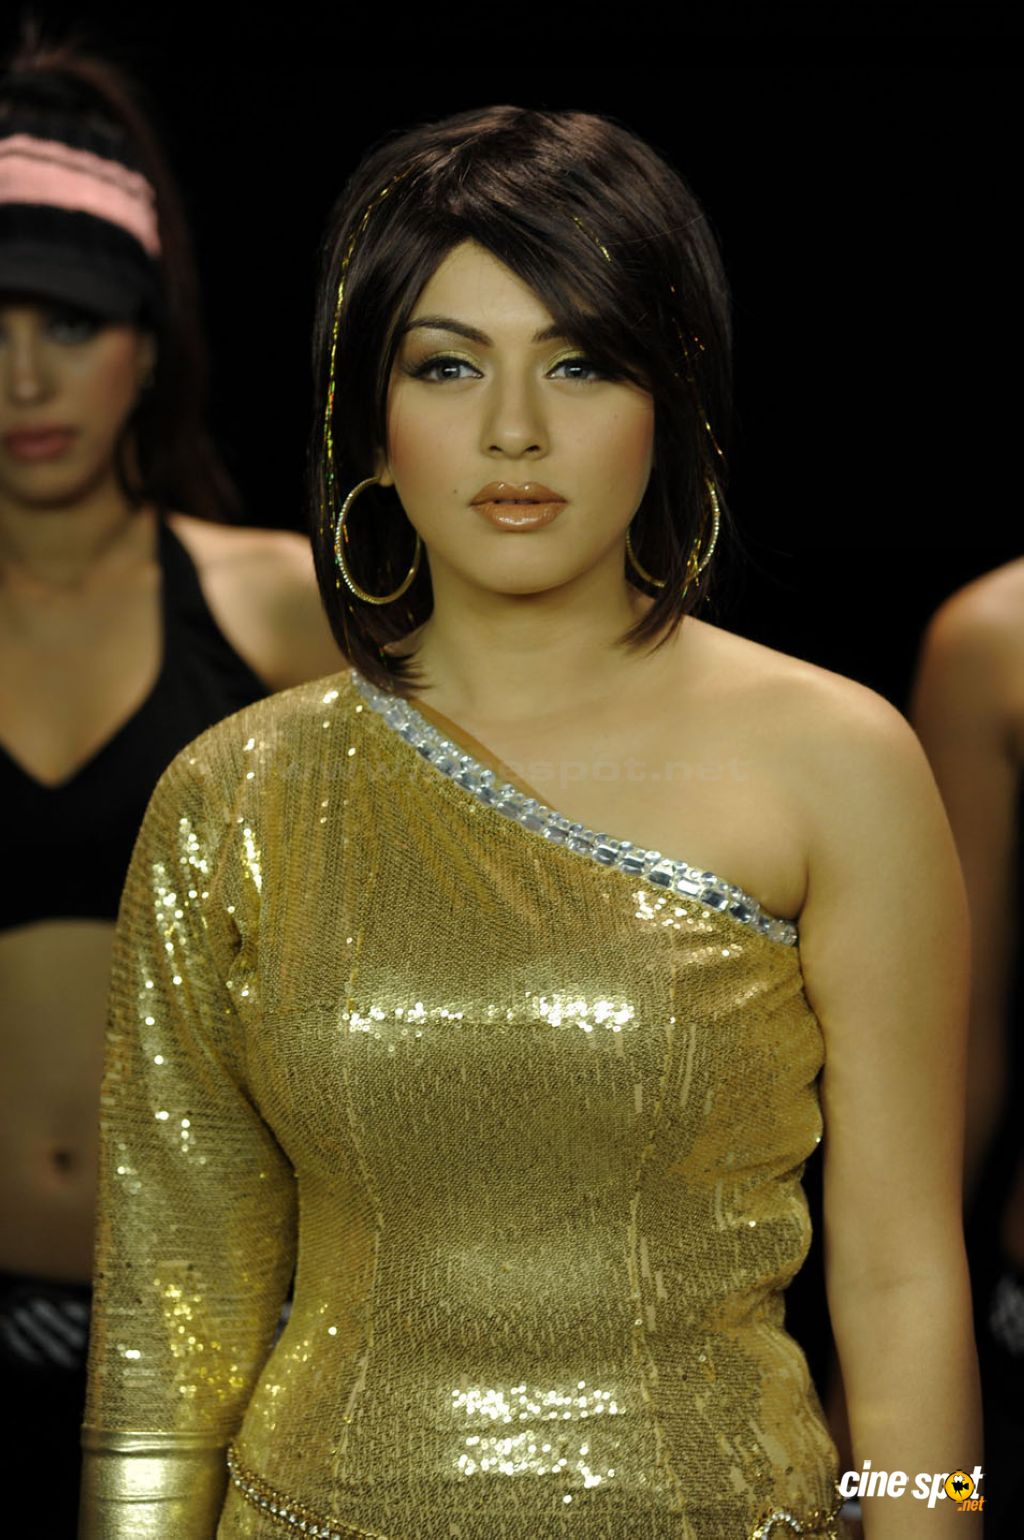 hansika motwani actress photos